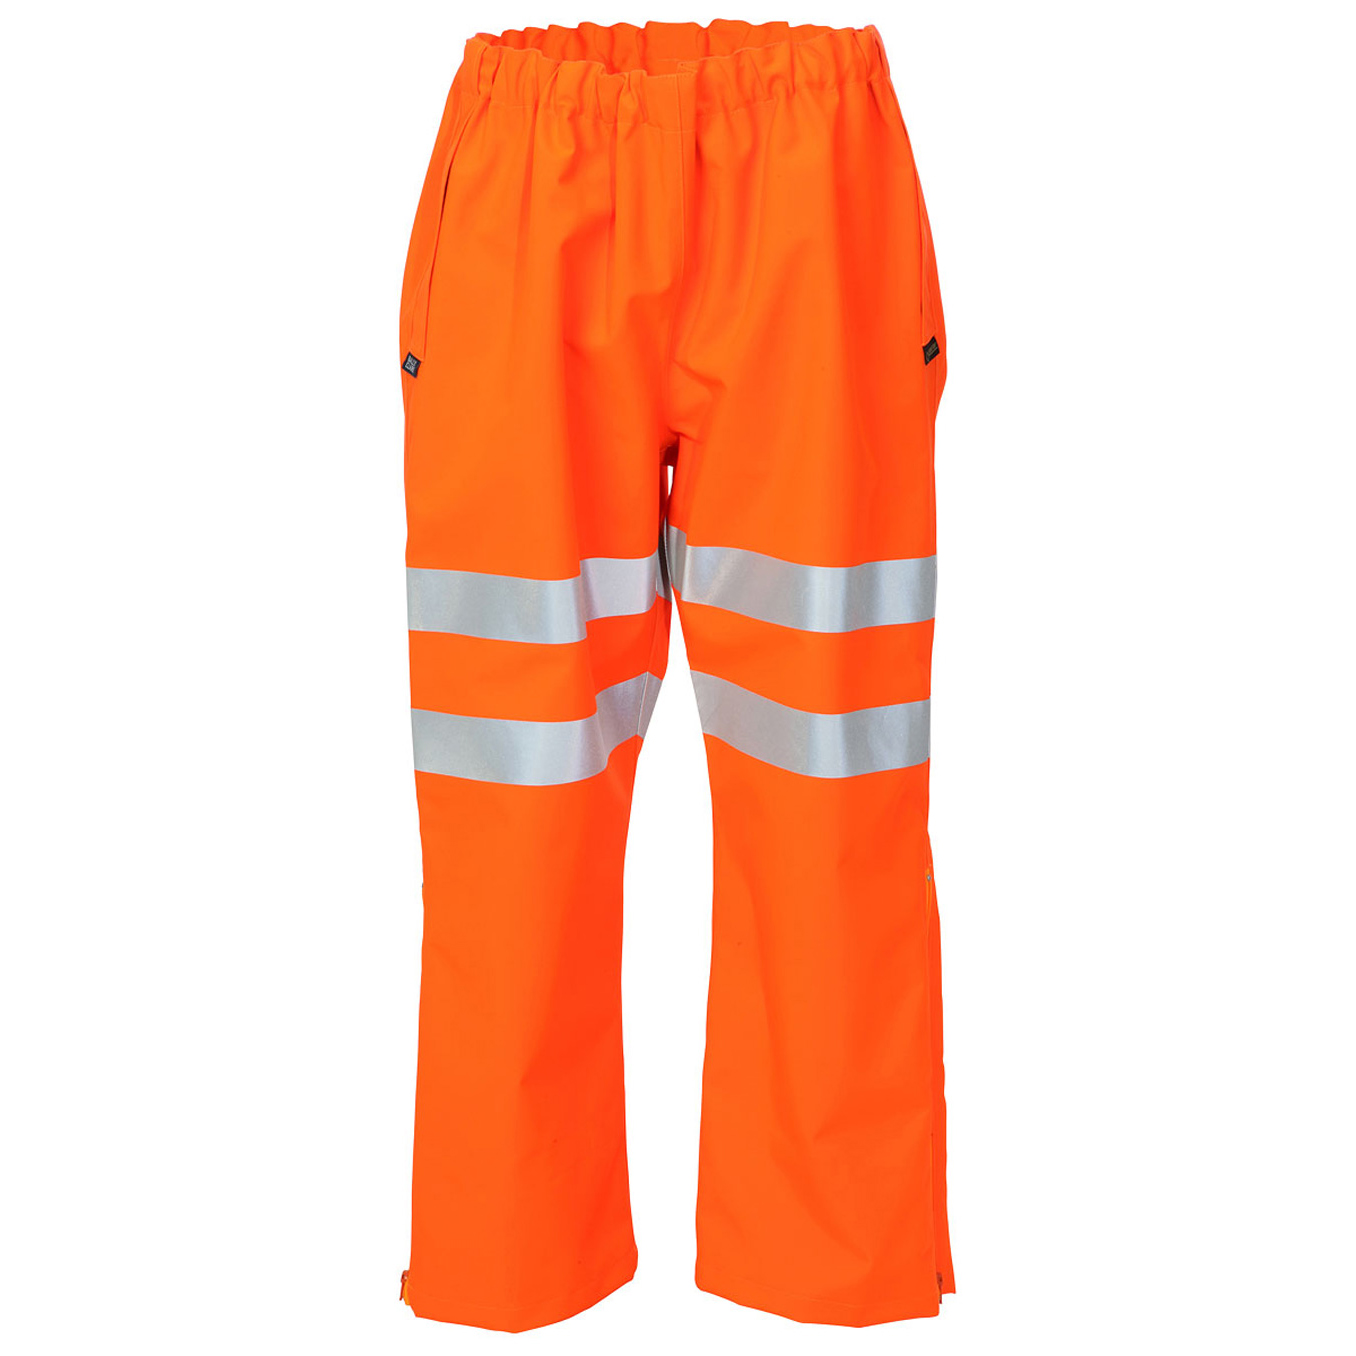 B-Seen Gore-Tex Over Trousers Foul Weather XL Orange Ref GTHV160ORXL *Up to 3 Day Leadtime*